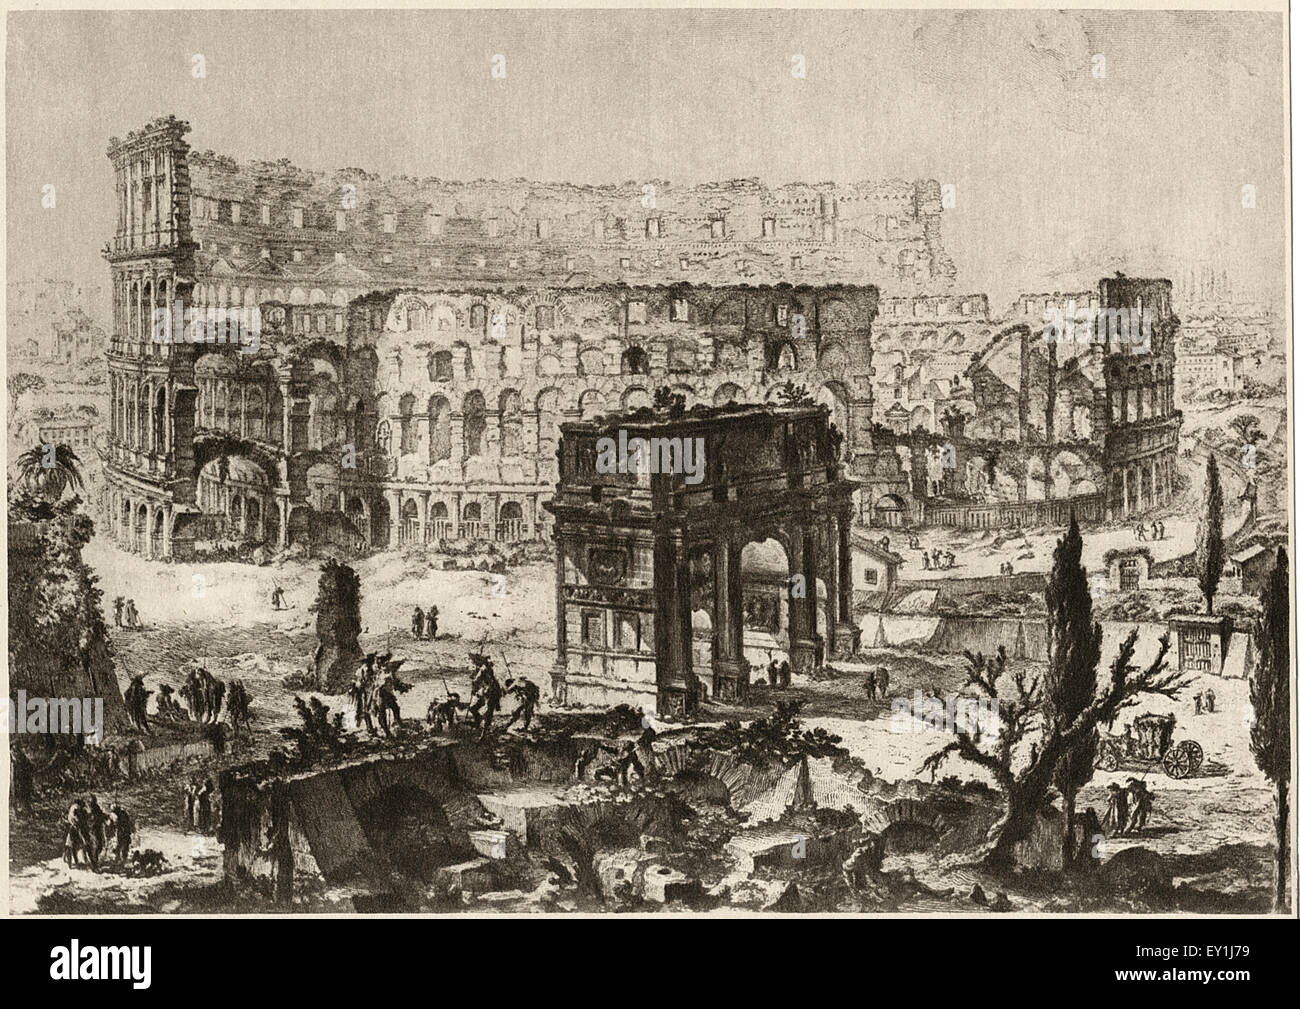 Colosseum, Rome, Italy, Illustration from 1760 Etching by Giovanni Battista  Piranesi, 1918